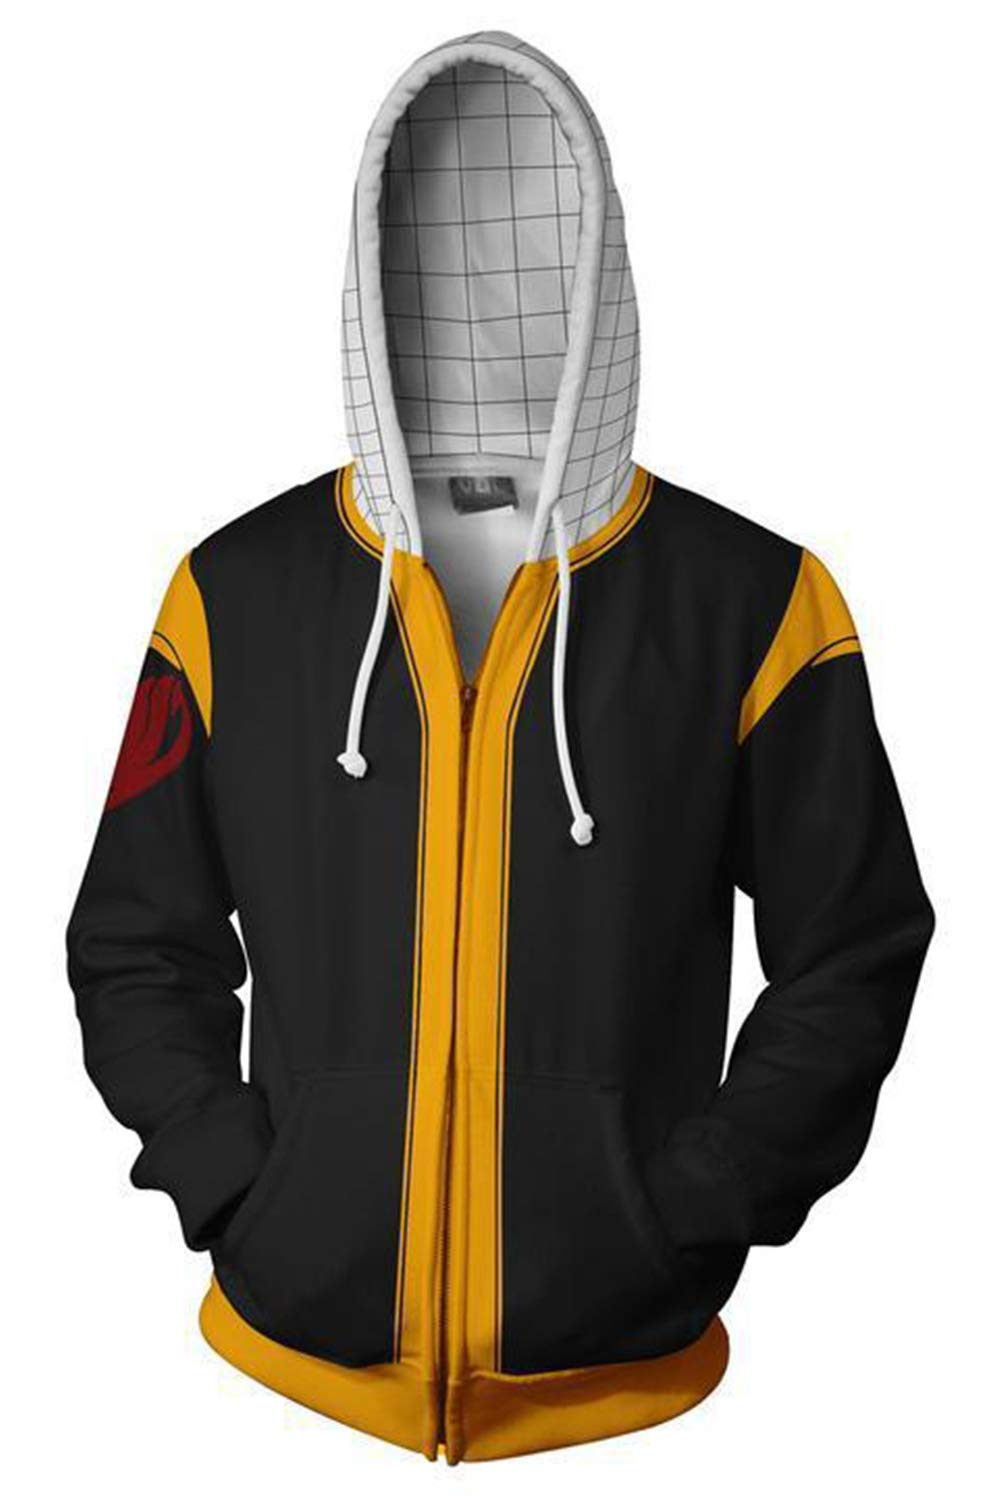 Fengstore Fairy Tail Natsu Dragneel Men's 3D Printed Hoodie Halloween Cosplay Costume Jacket Sweatshirt by Fengstore